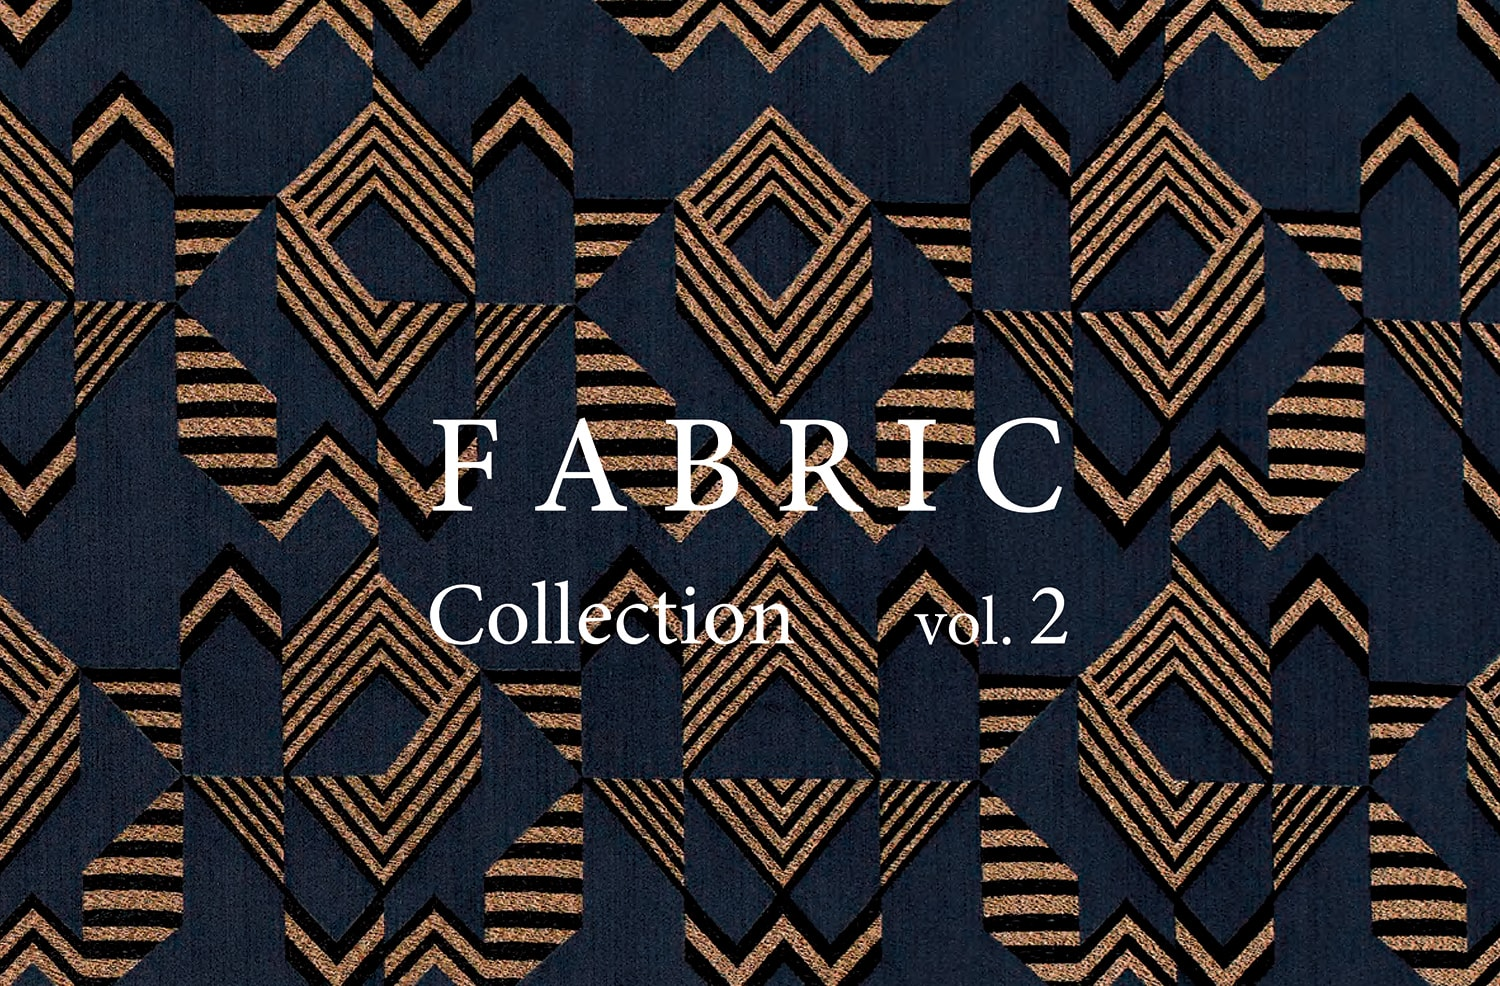 Fabric Collection vol.2 カタログ